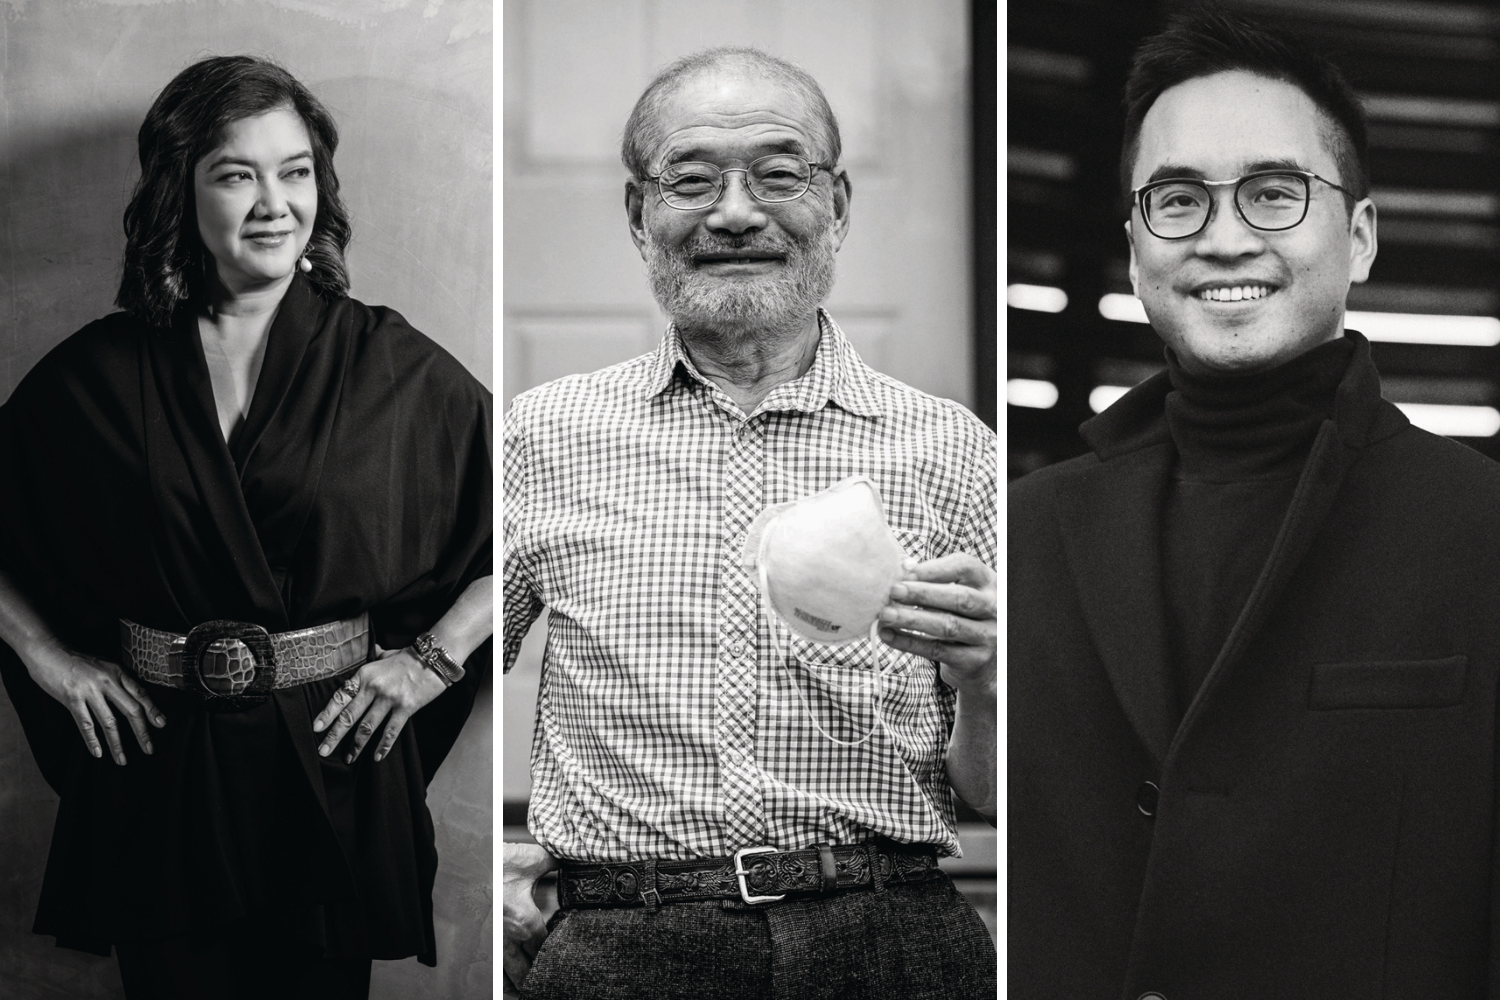 Introducing Asia's Most Influential: The Impact List 2020